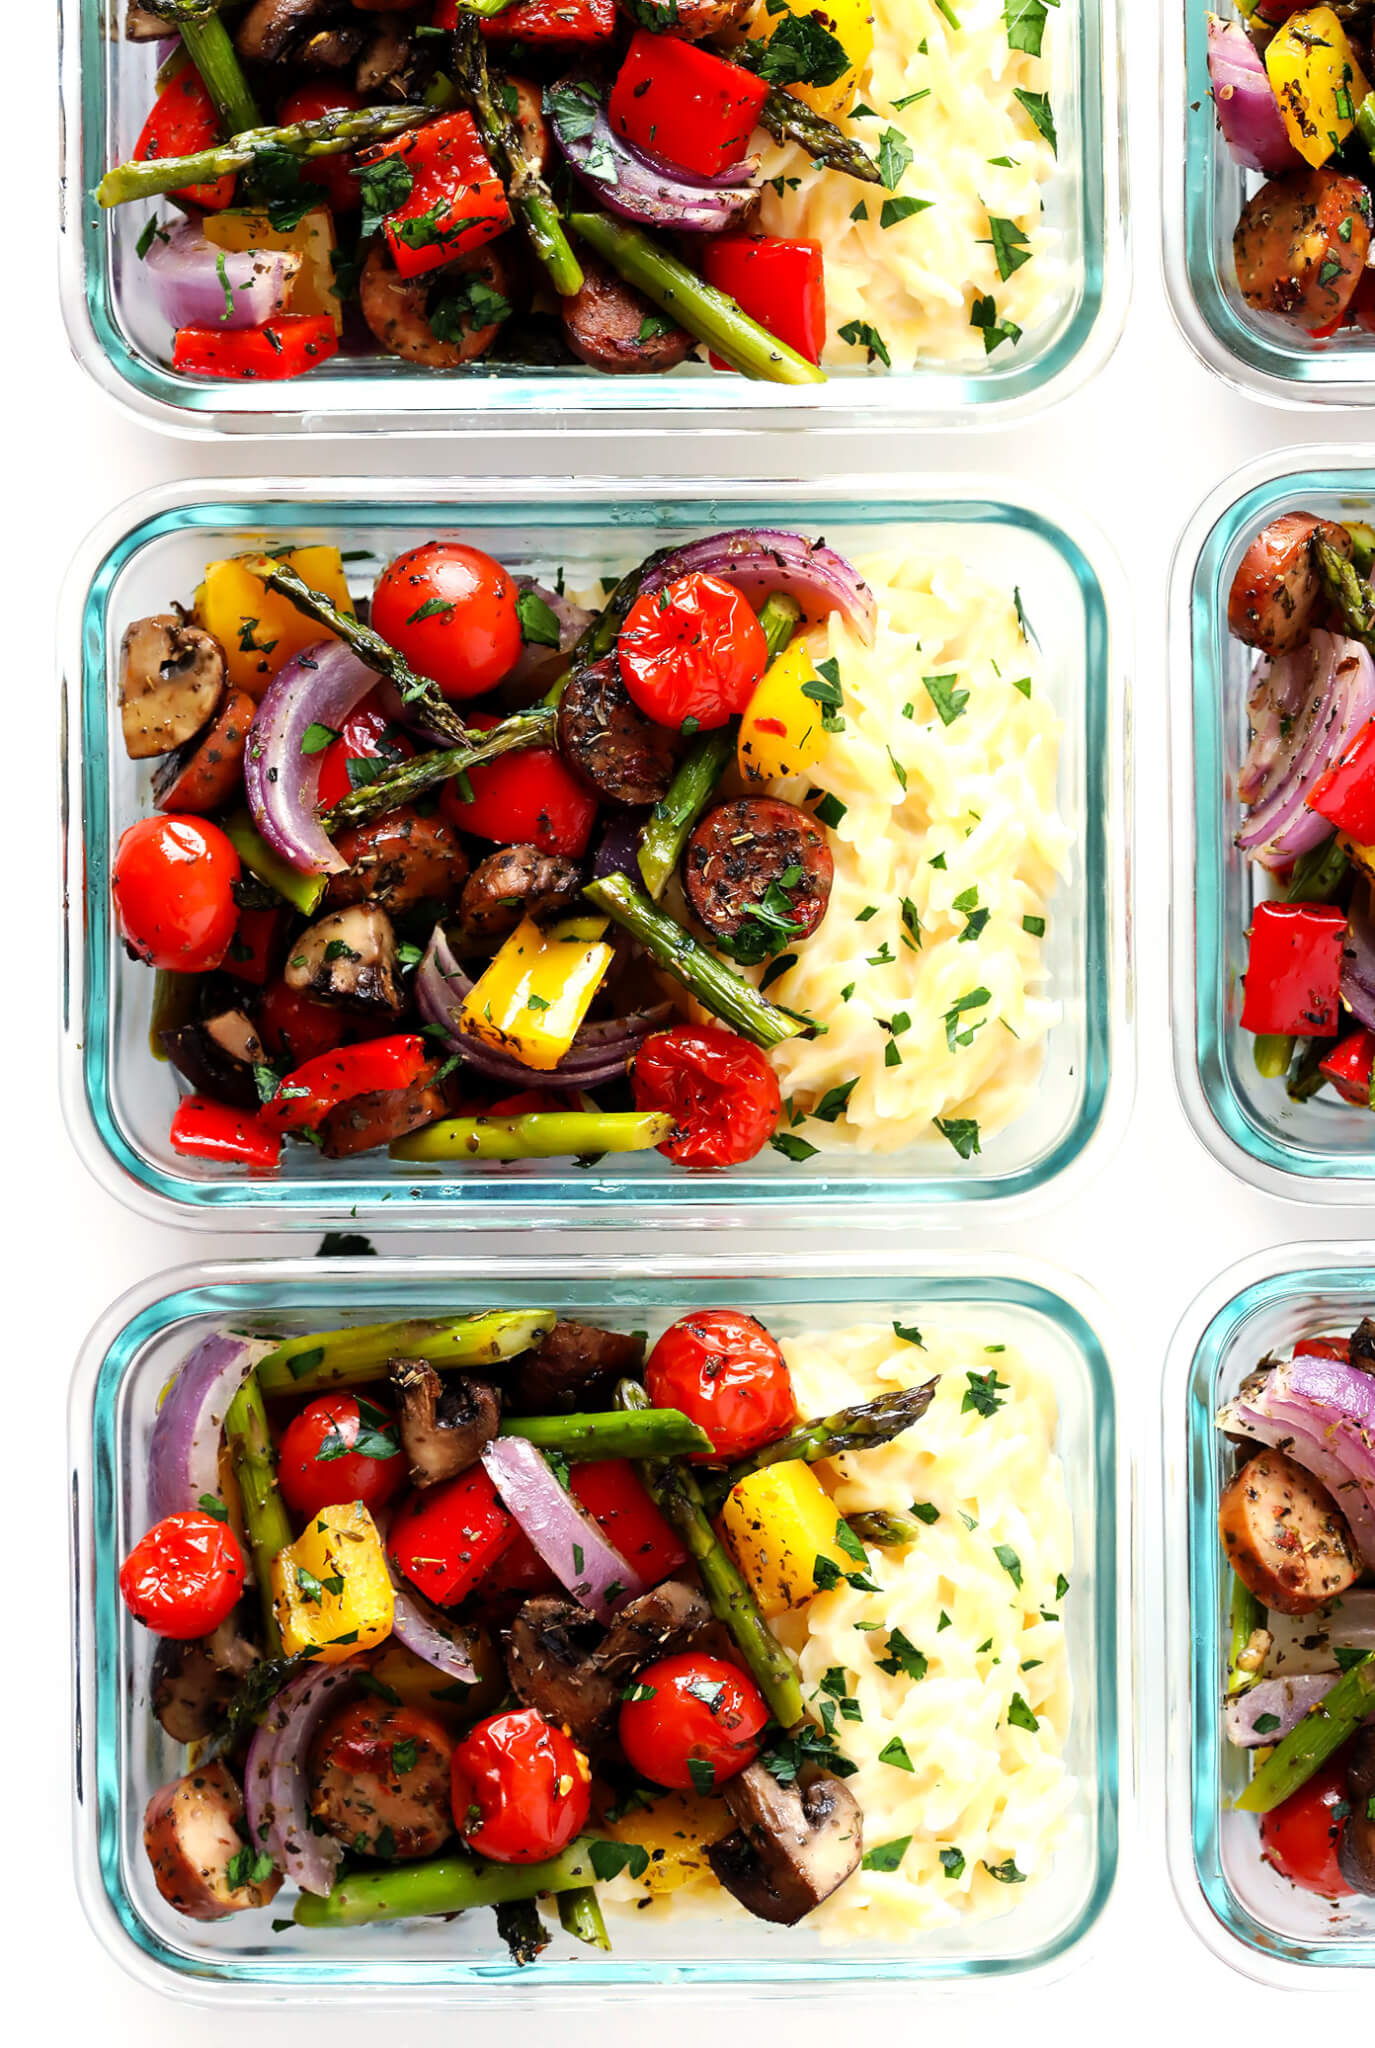 LOVE these Italian Sausage and Veggie Bowls! They're made with Italian roasted vegetables (such as tomatoes, asparagus, peppers, onions, mushrooms), paired with Parmesan Garlic Orzo Pasta, and perfect for easy lunch or dinner meal prep. So delicious! | gimmesomeoven.com